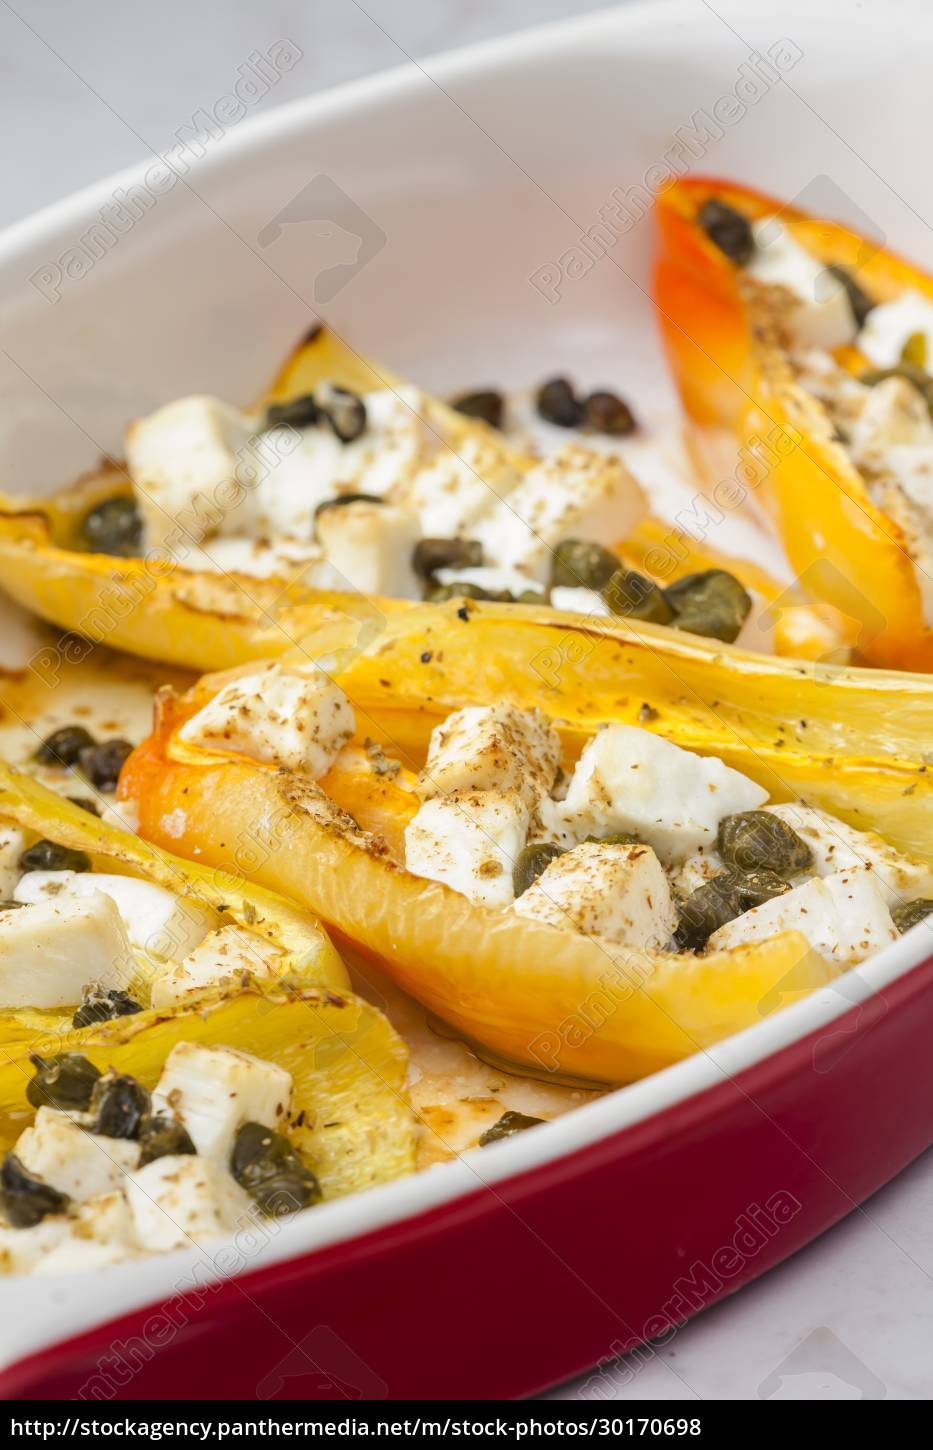 baked, yellow, peppers, with, feta, cheese - 30170698